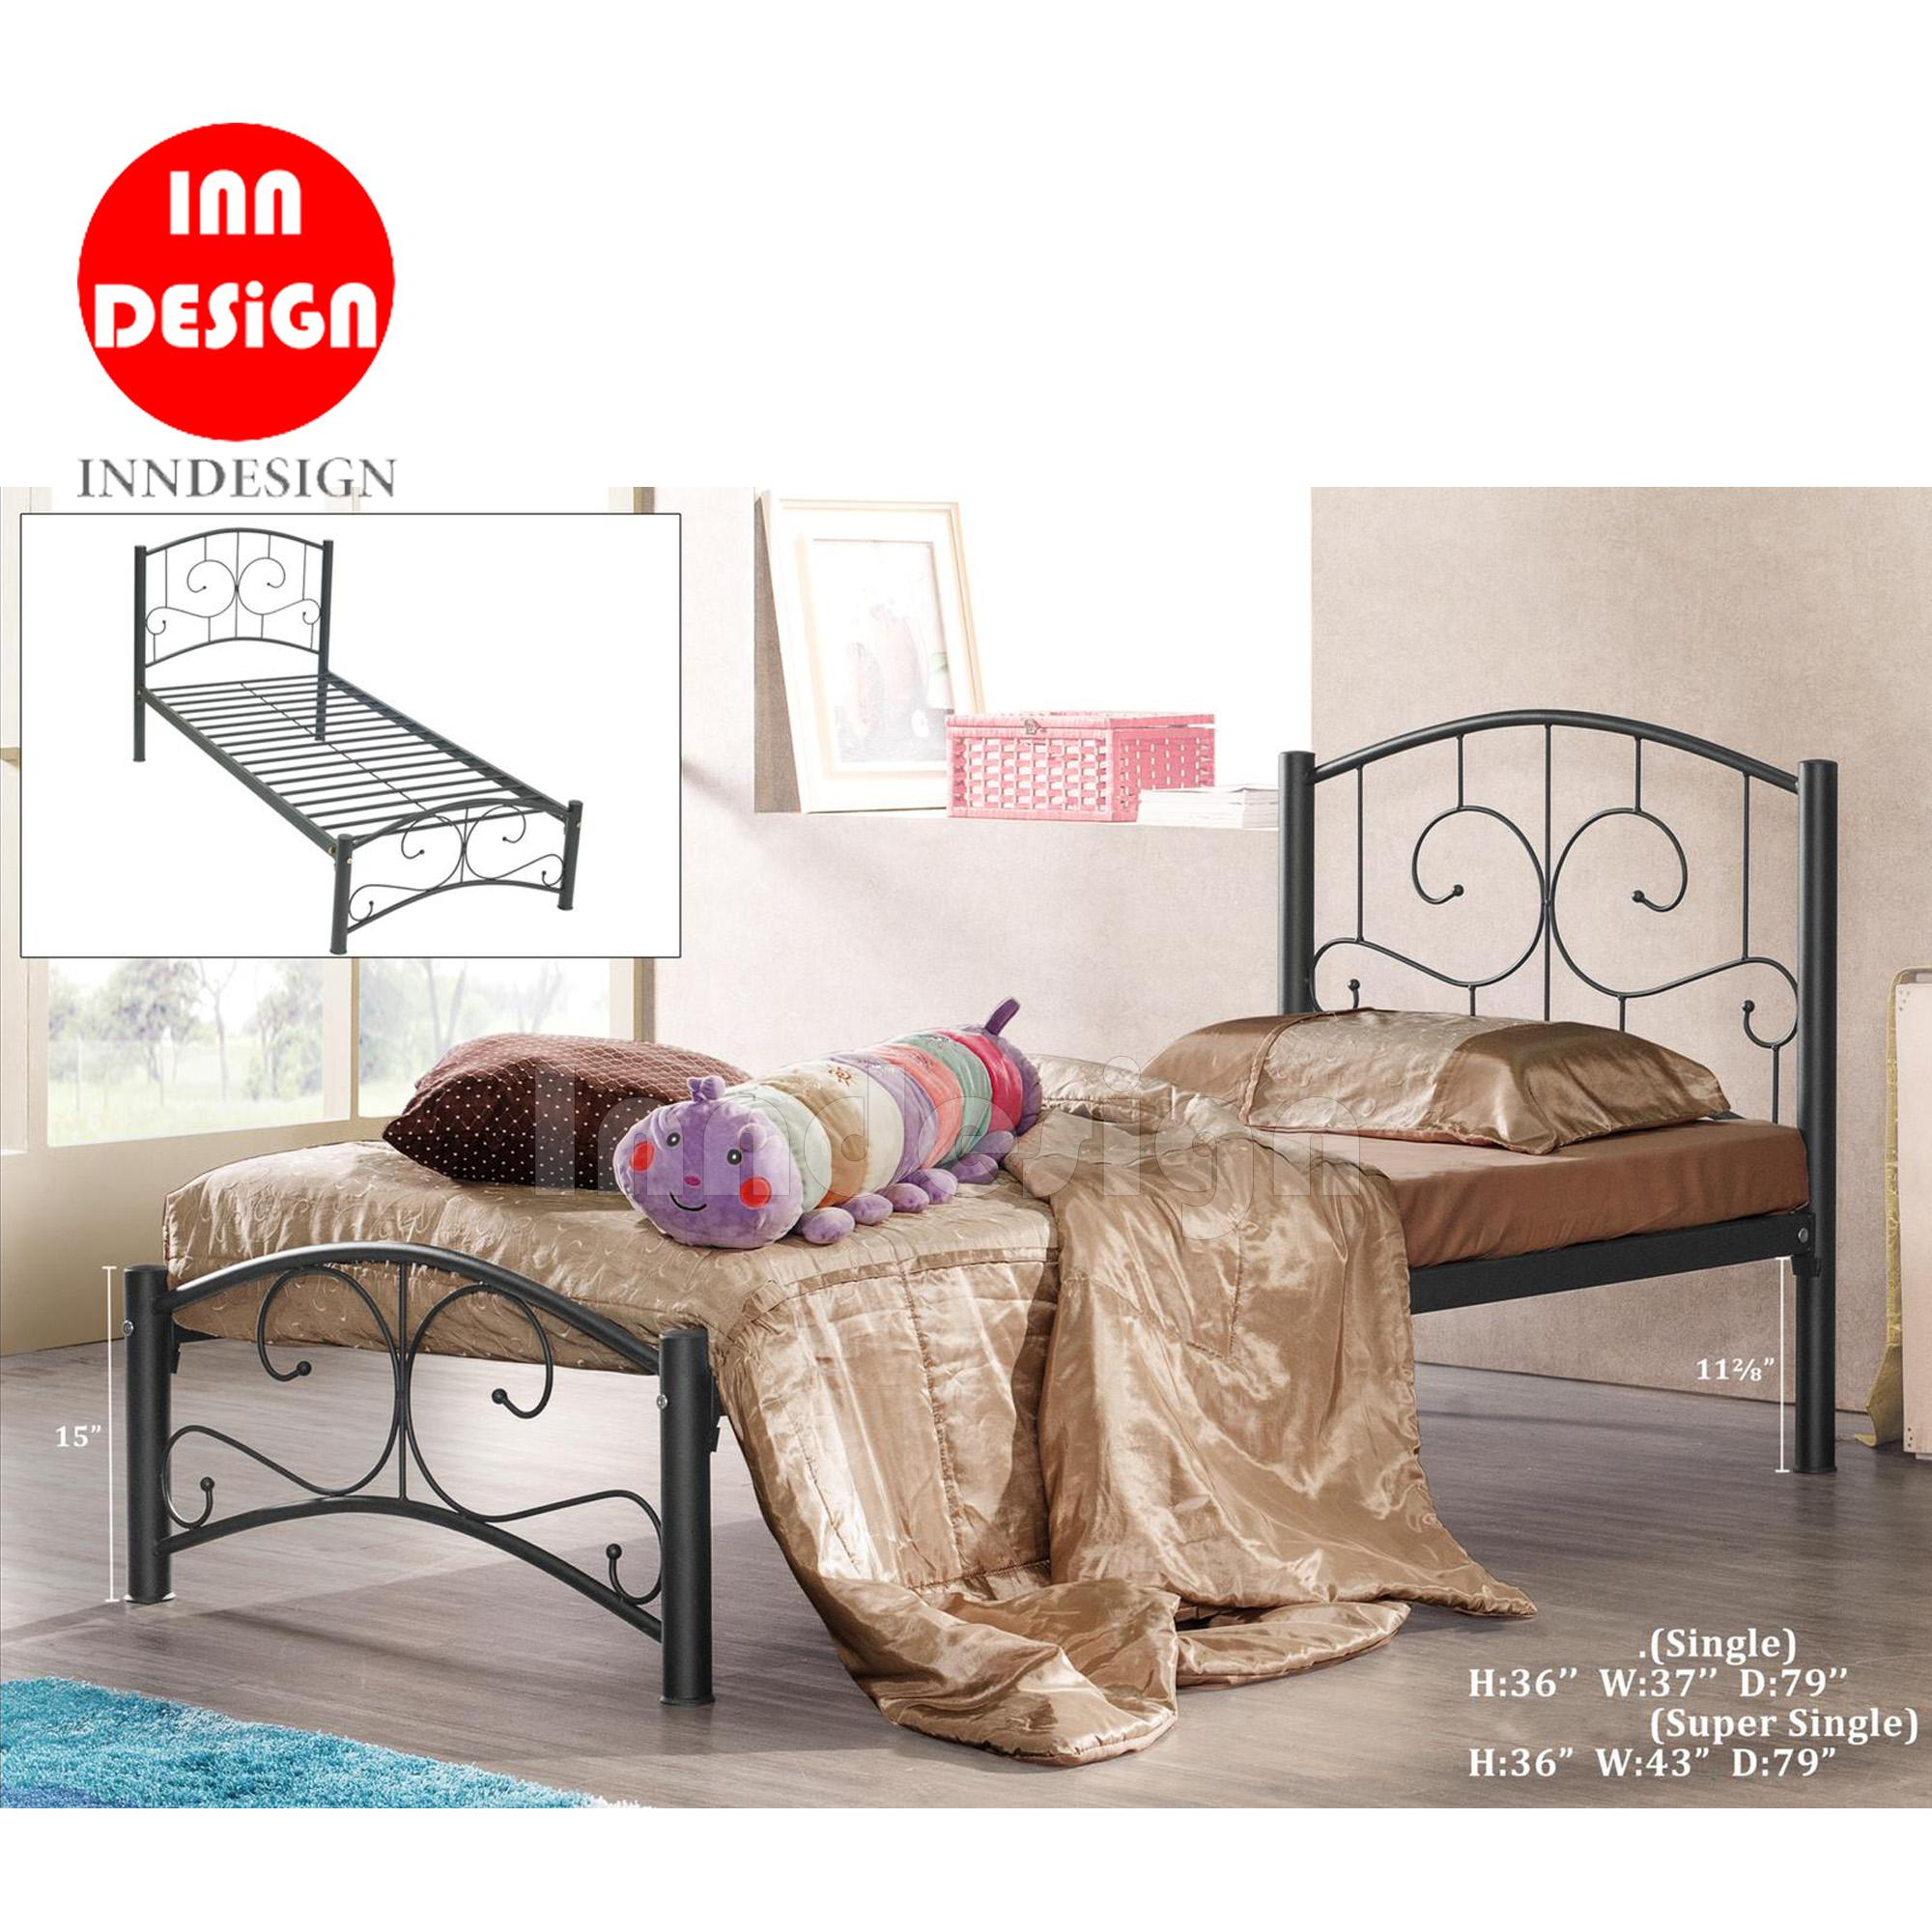 Single / Super Single Metal Bed / Metal Bed Frame (Black)